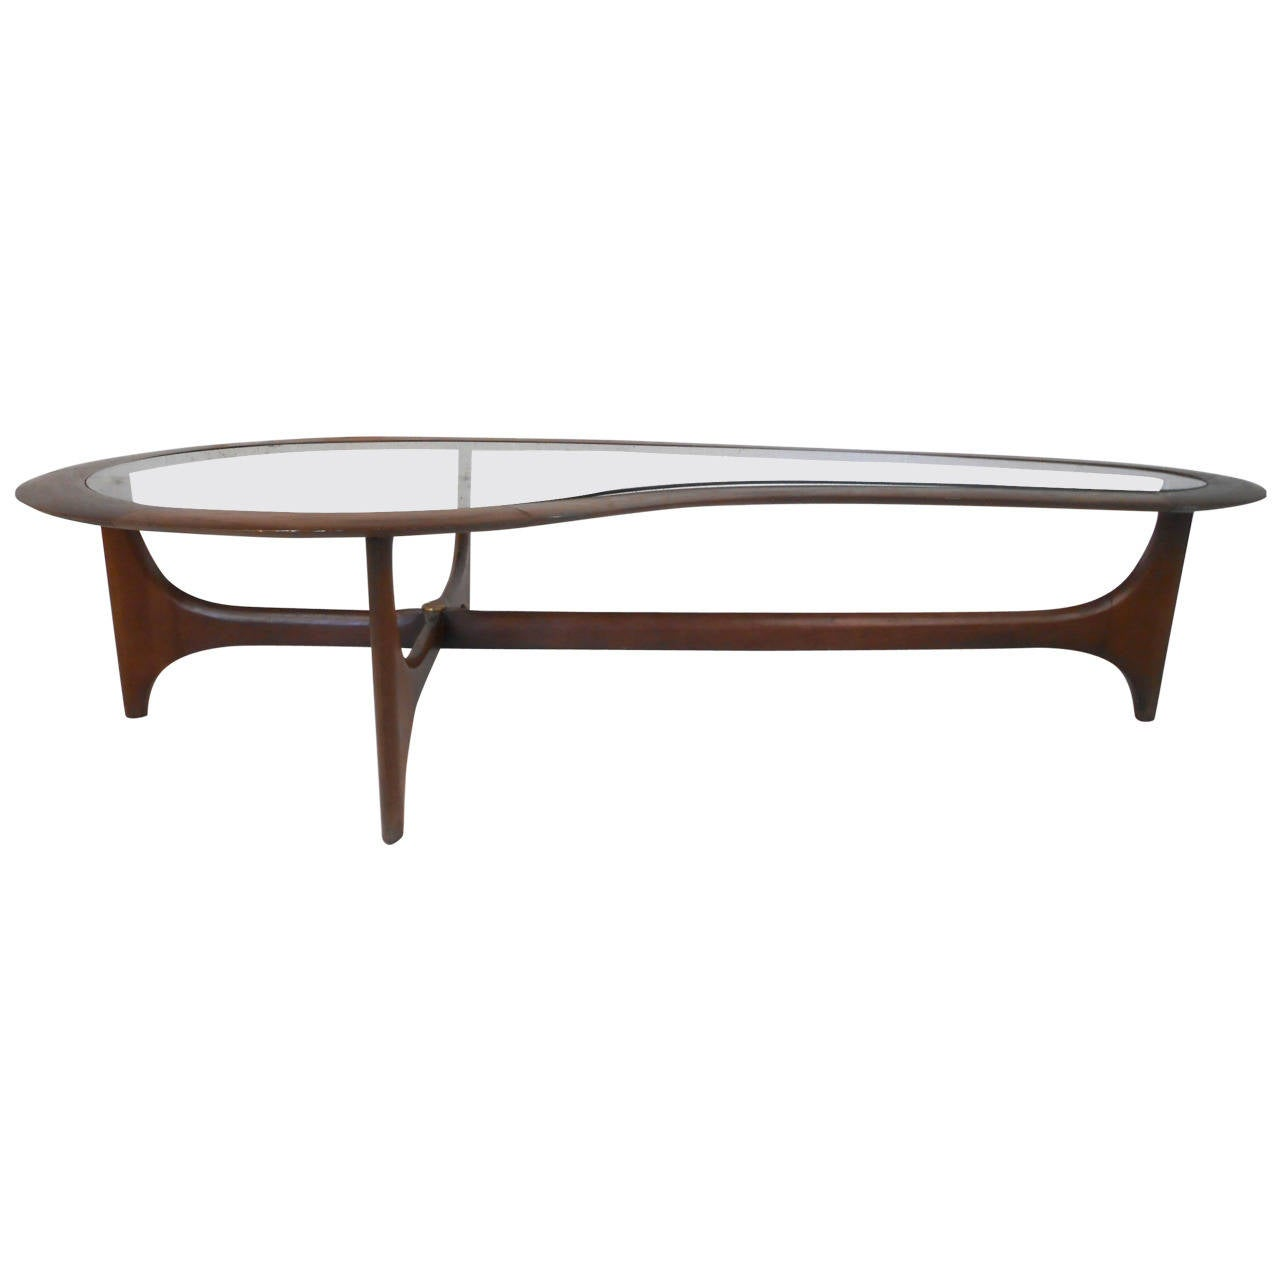 Neptune Cocktail Table ... Modern Pearsall Style Kidney Coffee Table by Lane For Sale at 1stdibs